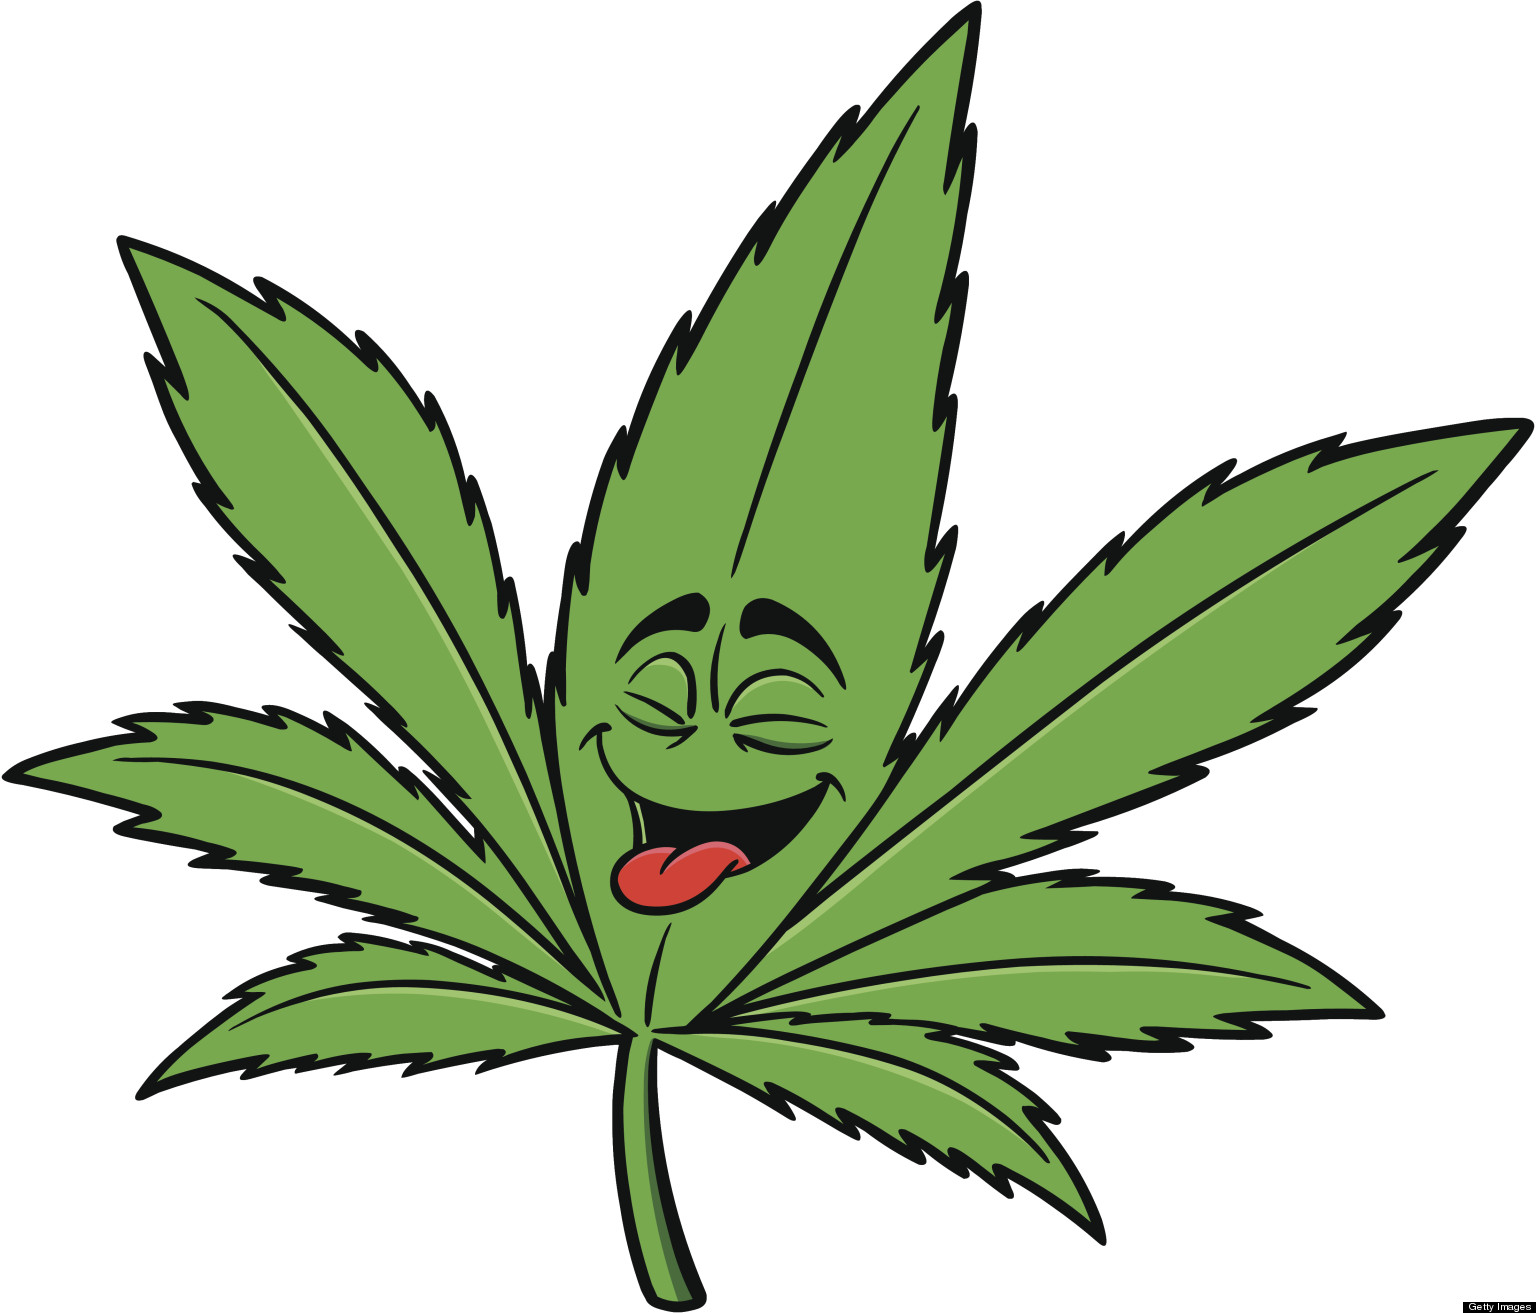 Weed Plant Drawing | Free download best Weed Plant Drawing